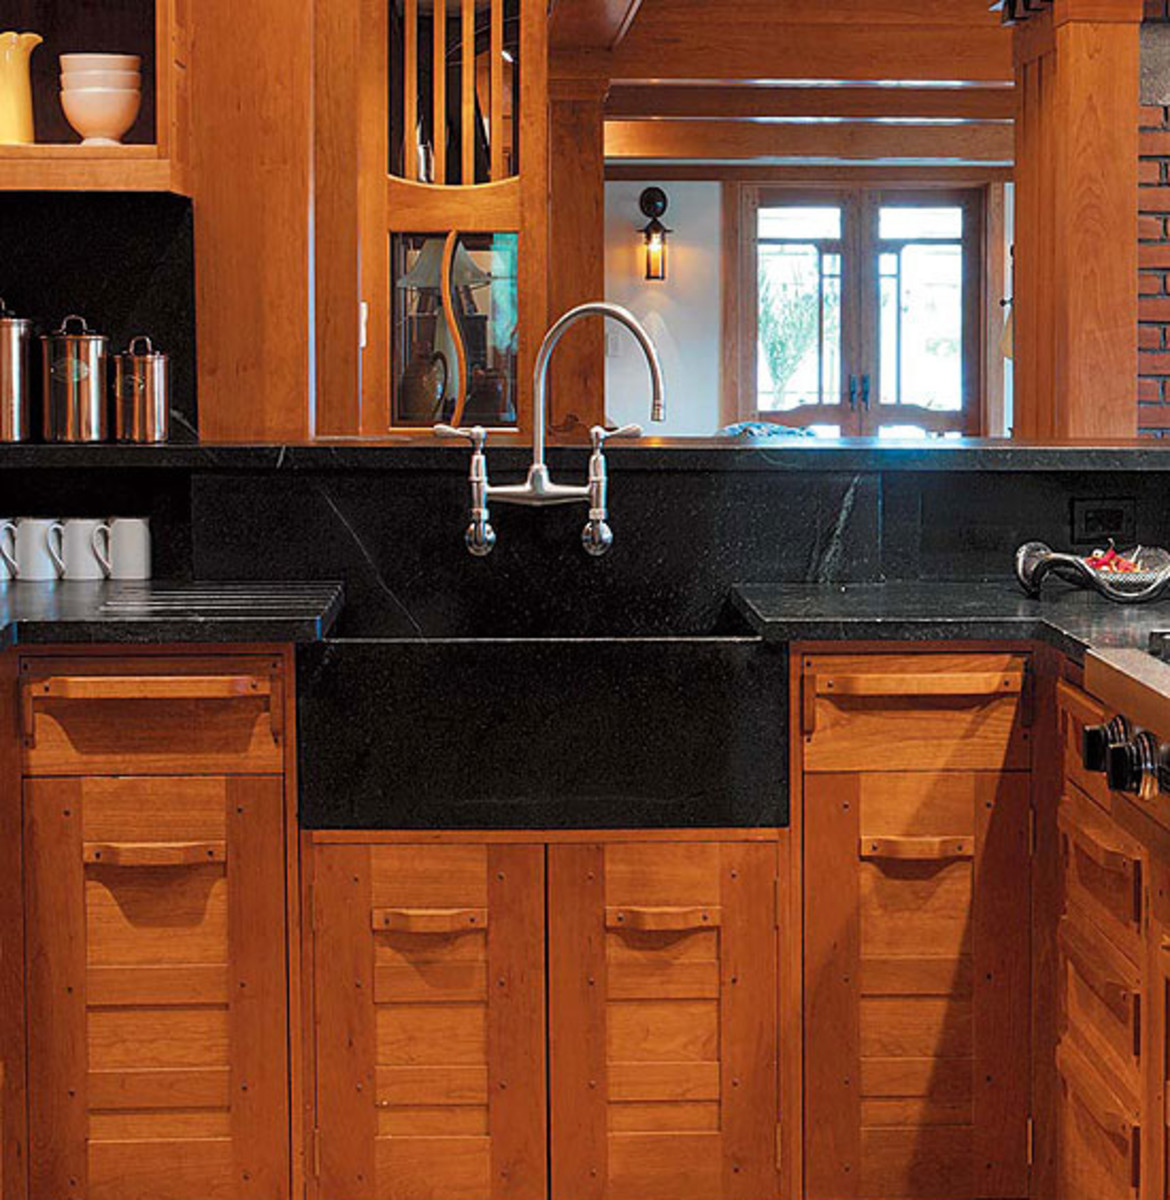 Slate, Soapstone, And Honed Granite Are Timeless Materials For Countertop  And Backsplash, For